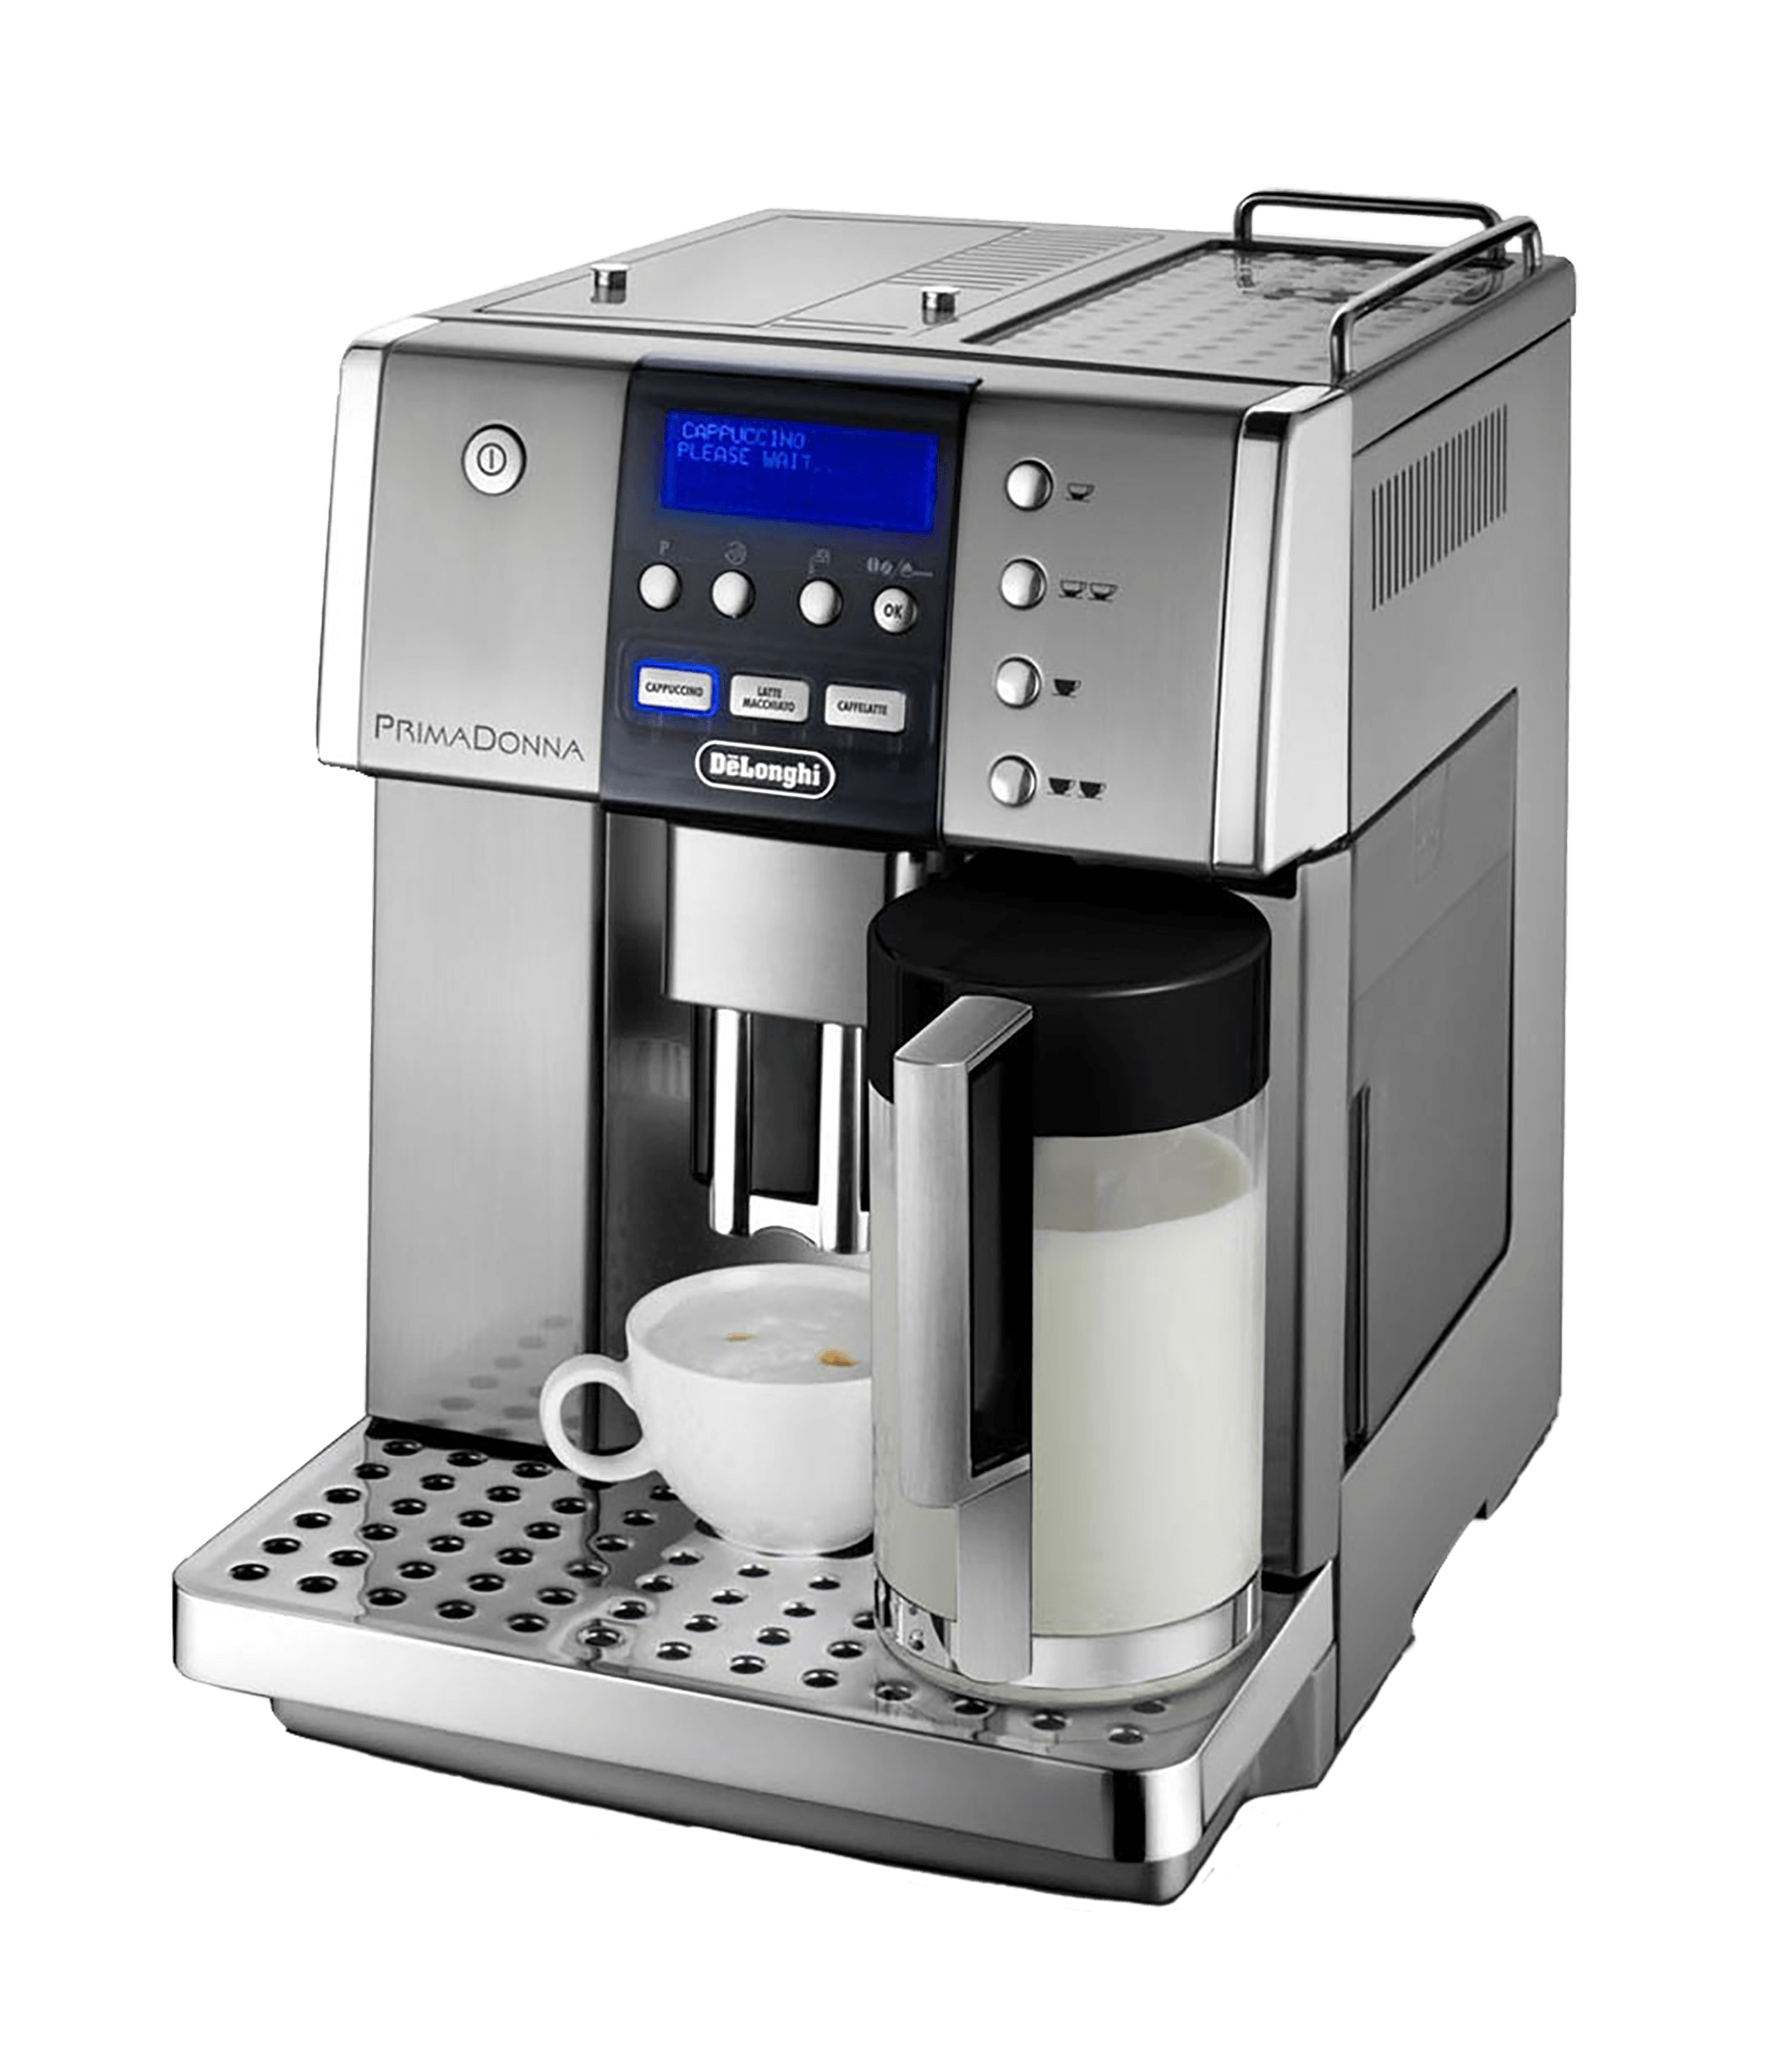 Delonghi Prima Donna Coffee Machine - Coffee Machine HD PNG